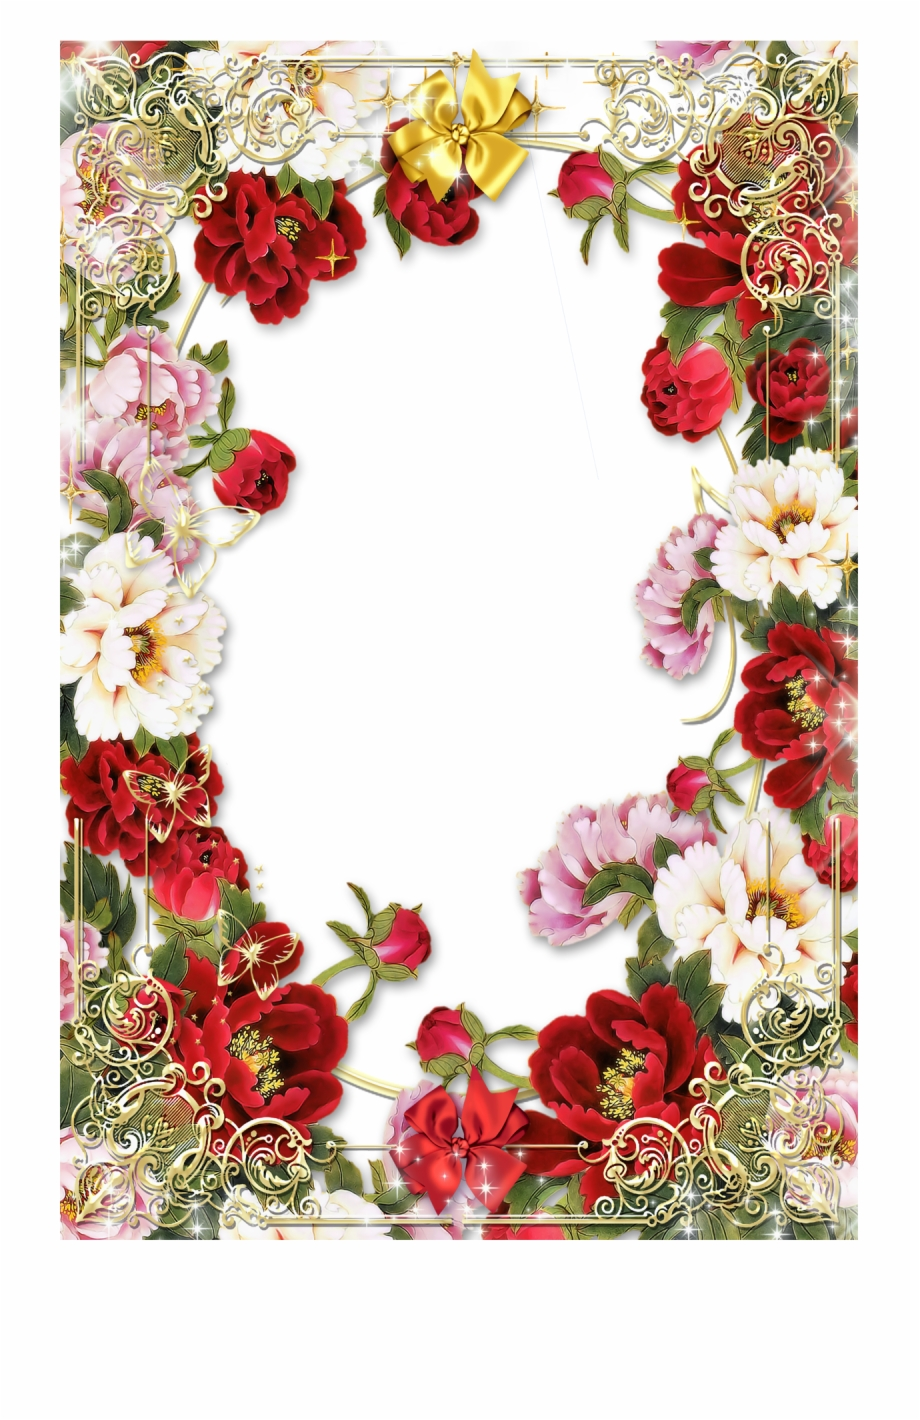 Flowers Borders Png Transparent Images Border Rose Flower Design